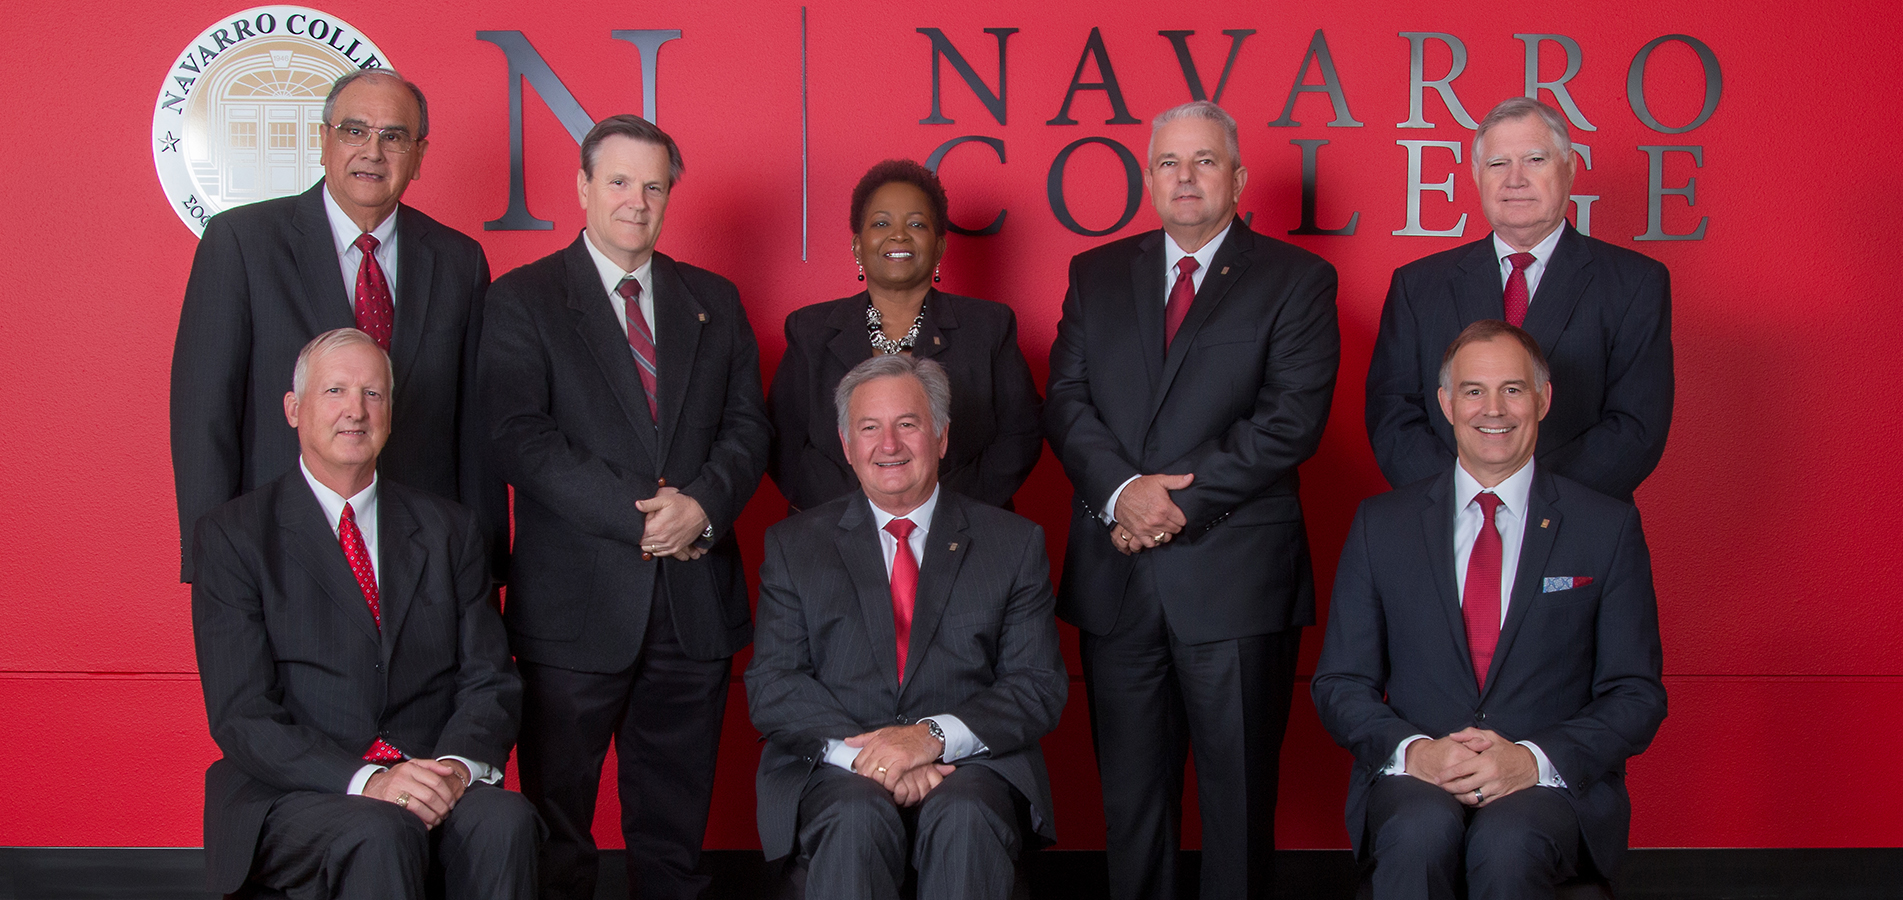 Navarro College Board of Trustees